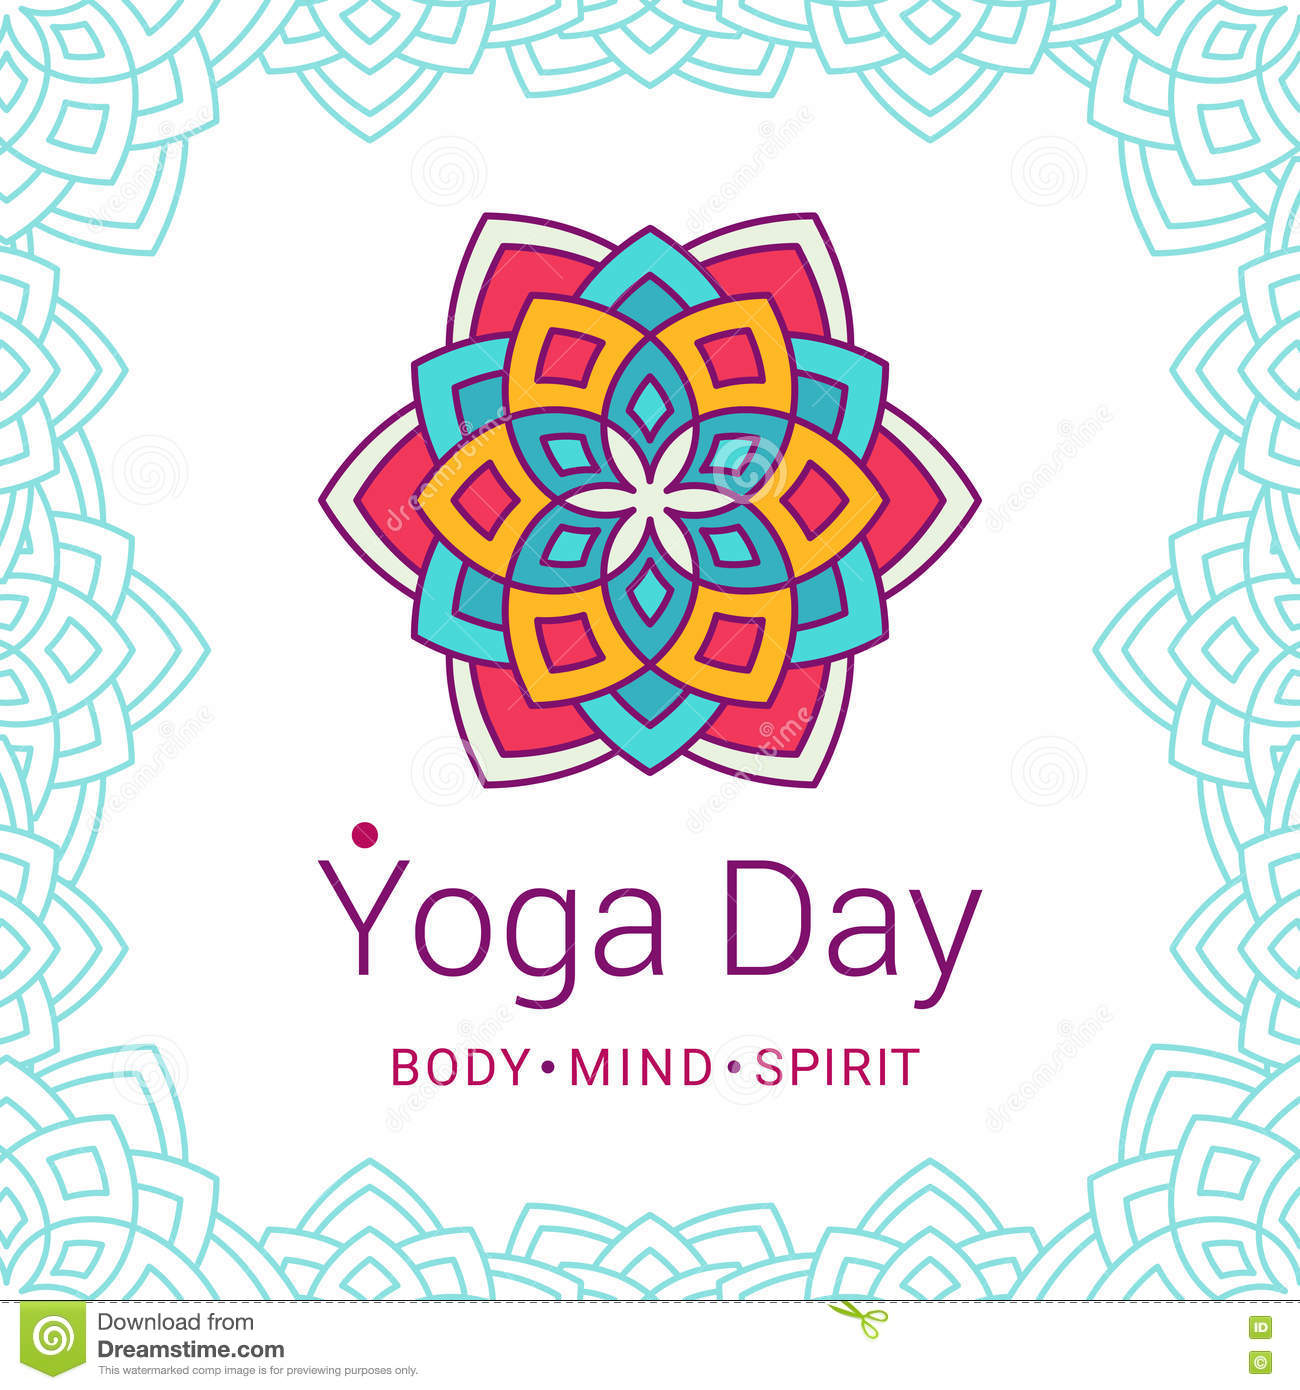 Yoga Day Event Poster Design Stock Vector